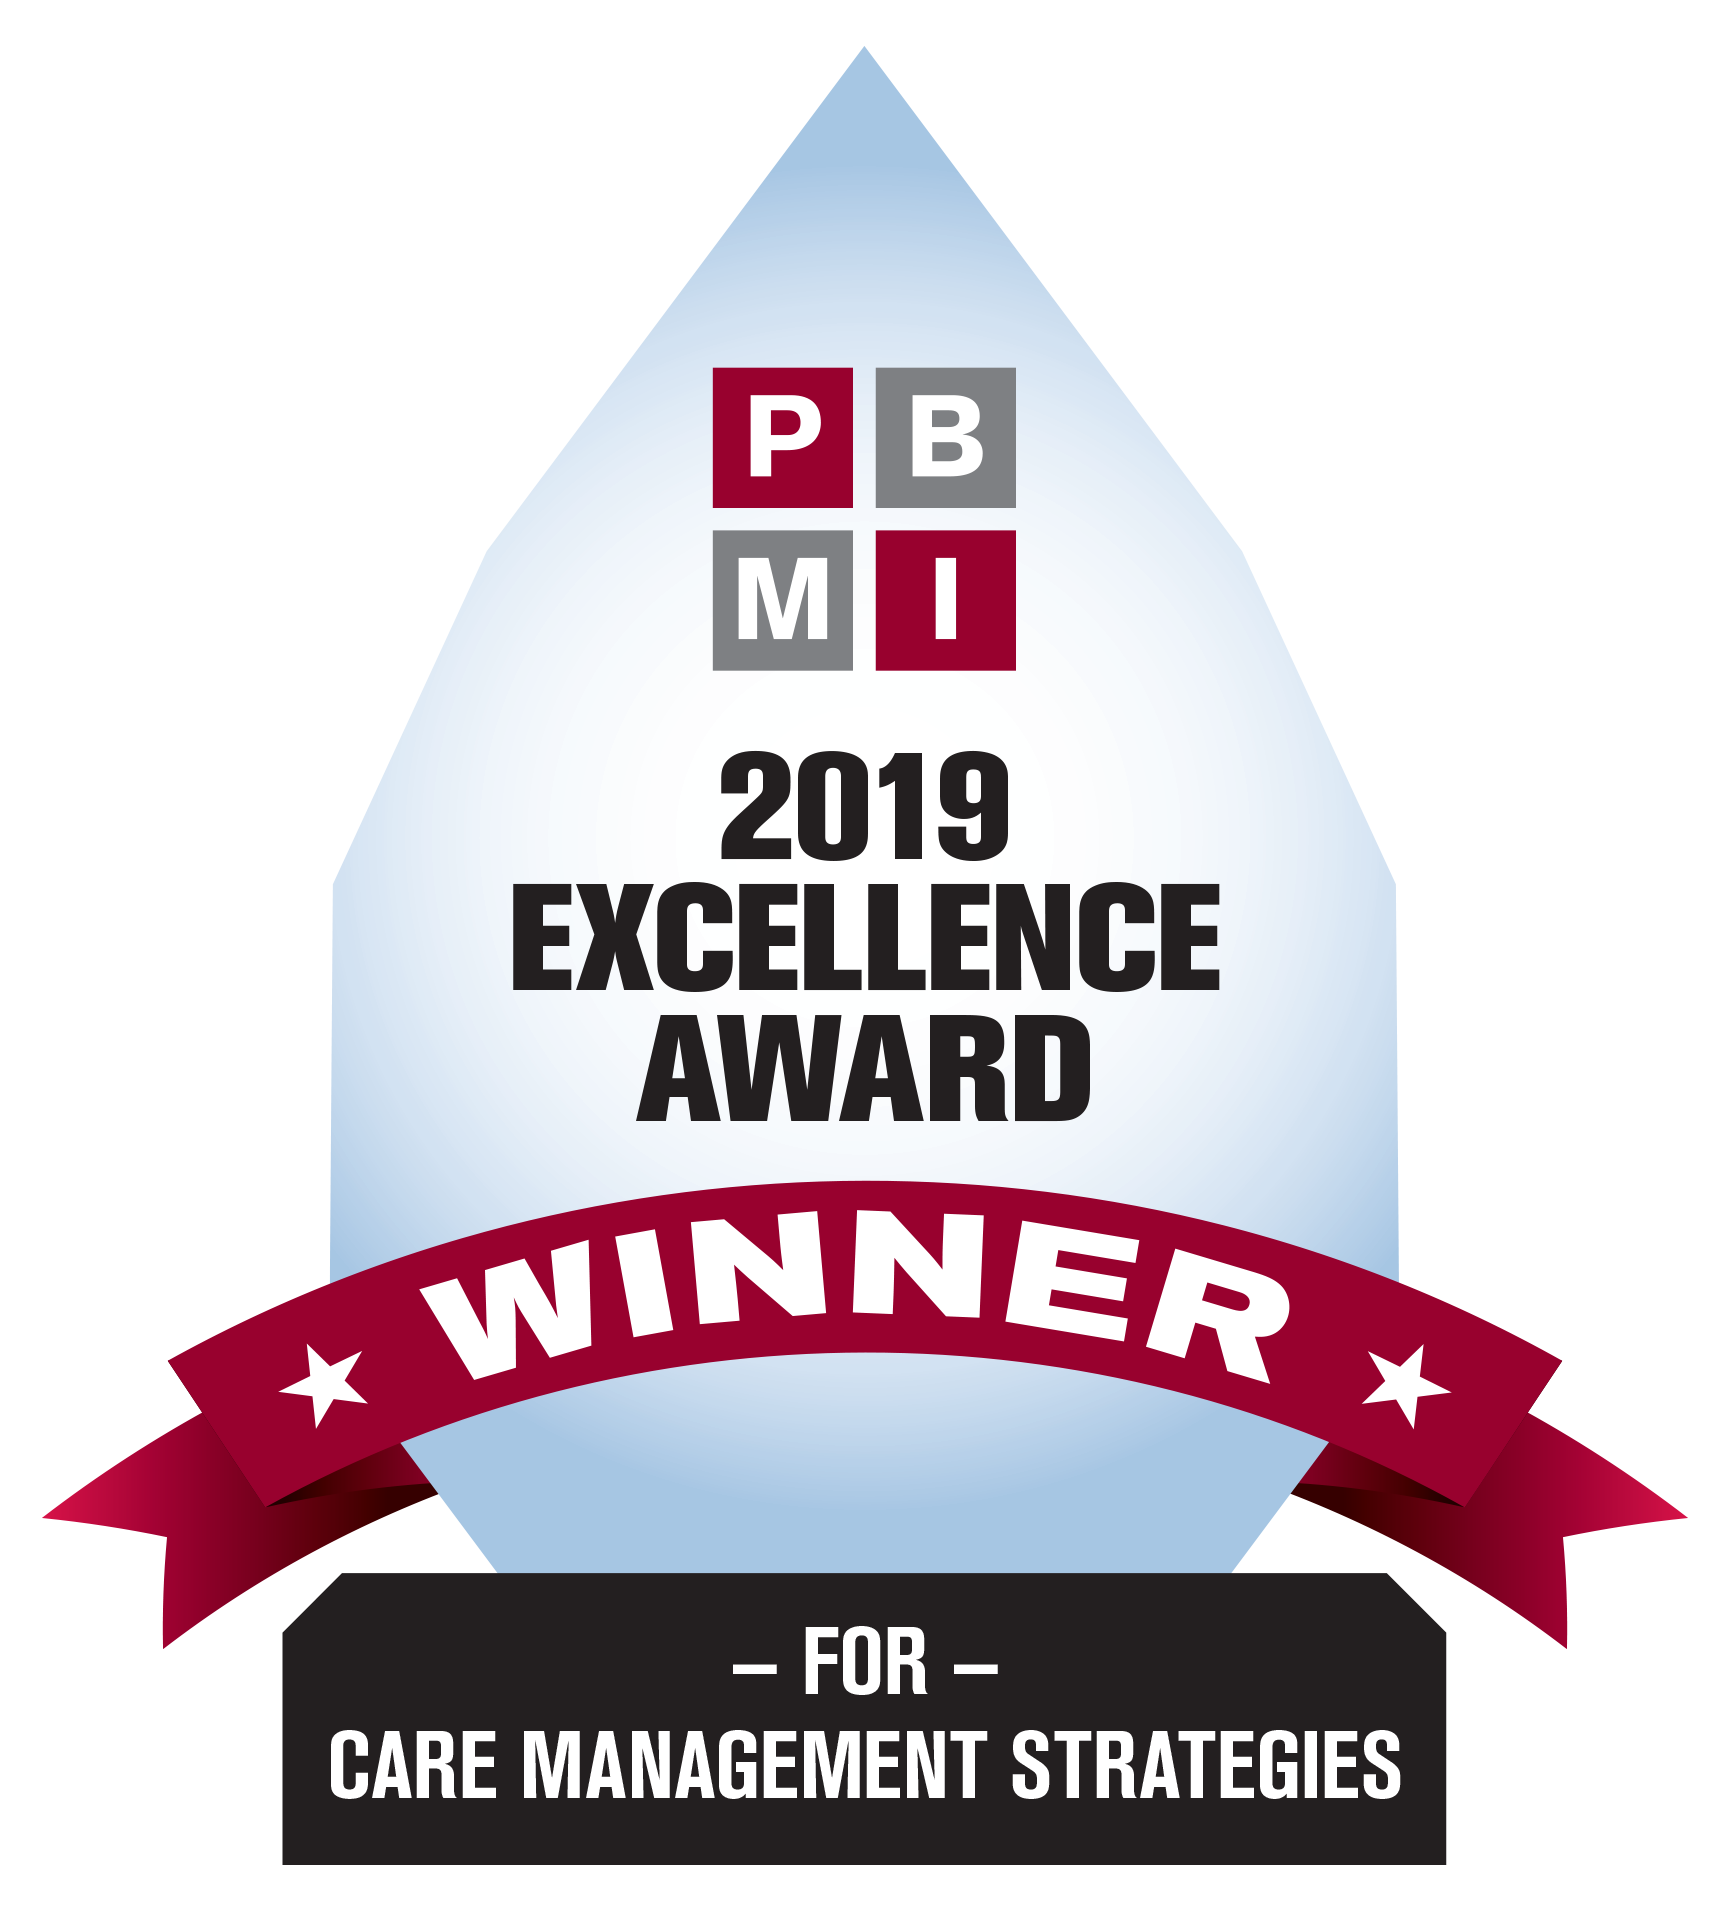 PBMI Excellence Award for Care Management Strategies